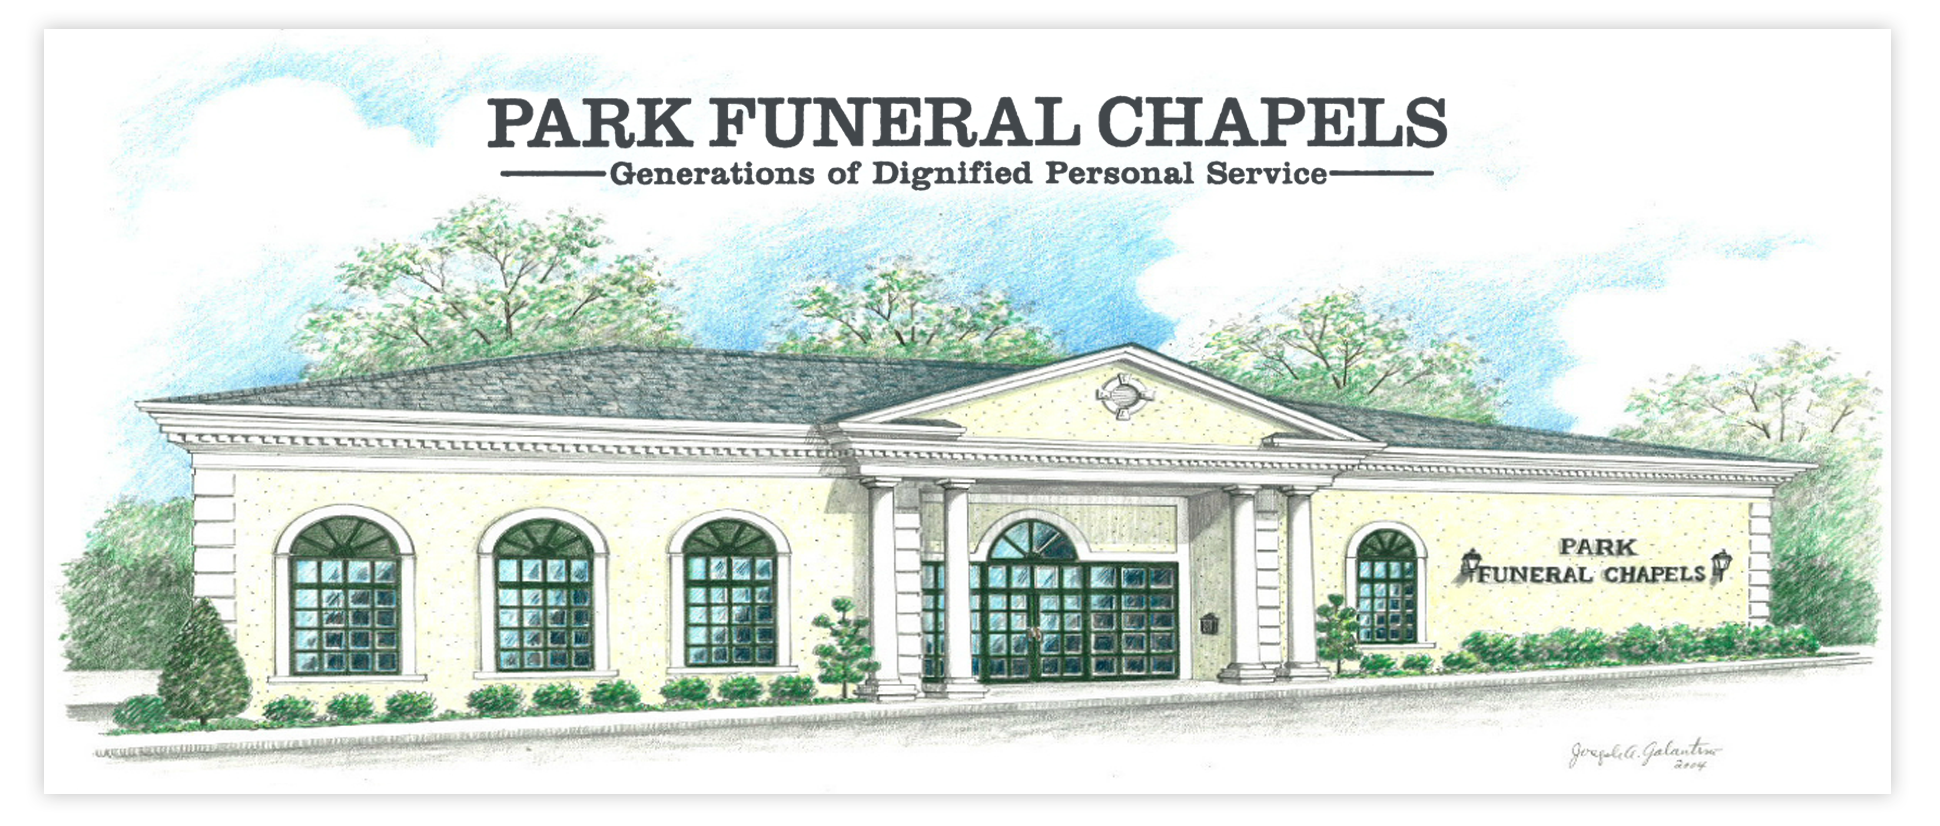 Superbe Home | Park Funeral Chapels In Garden City Park New York